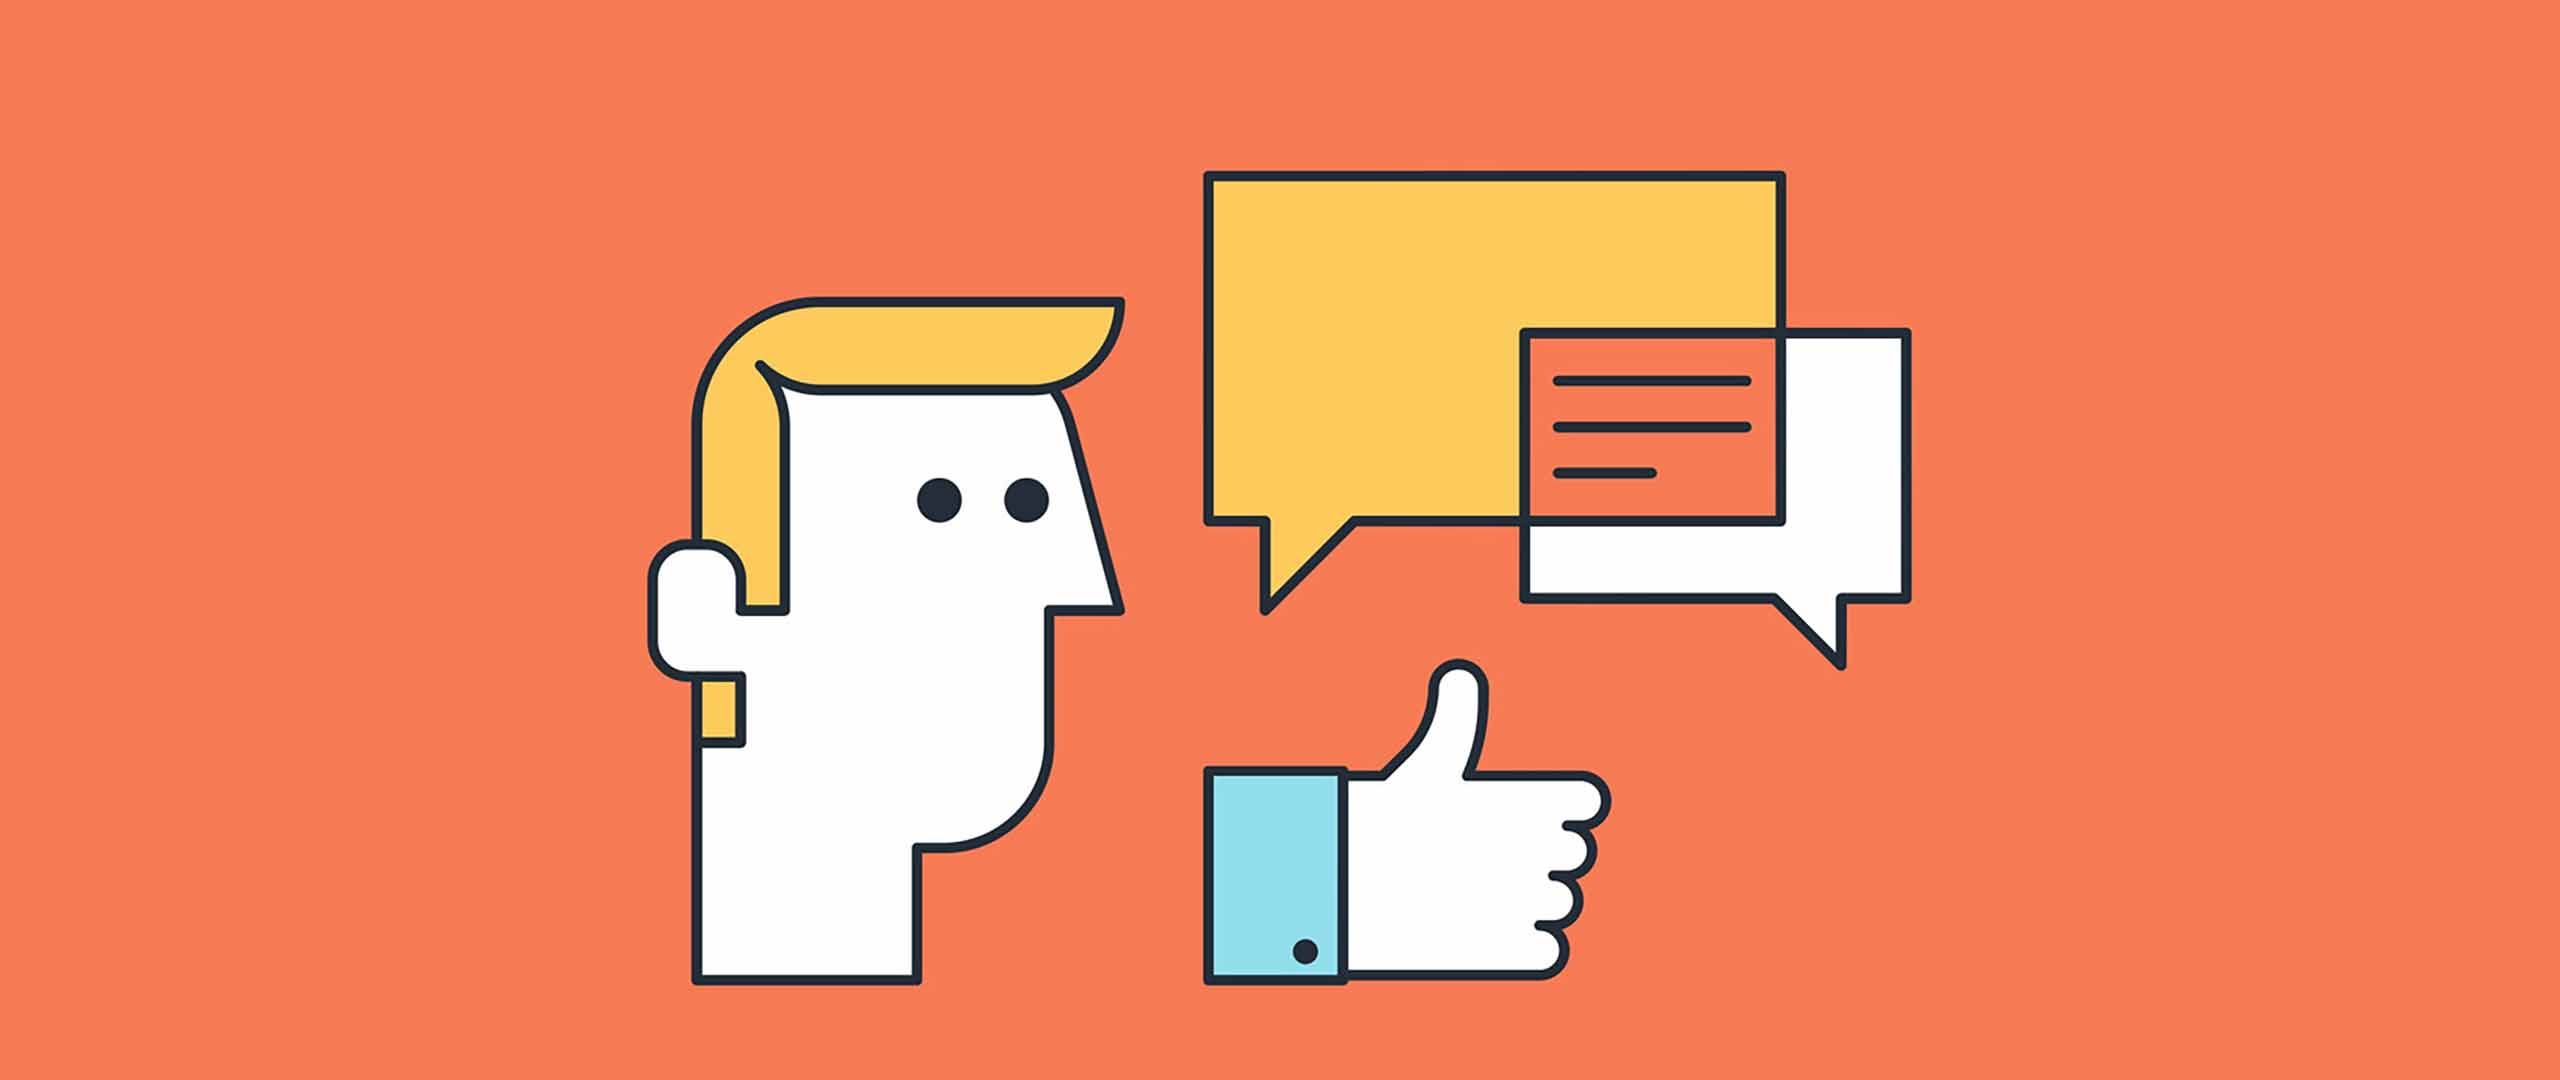 20 Ways To Let People Know About Your Campaign